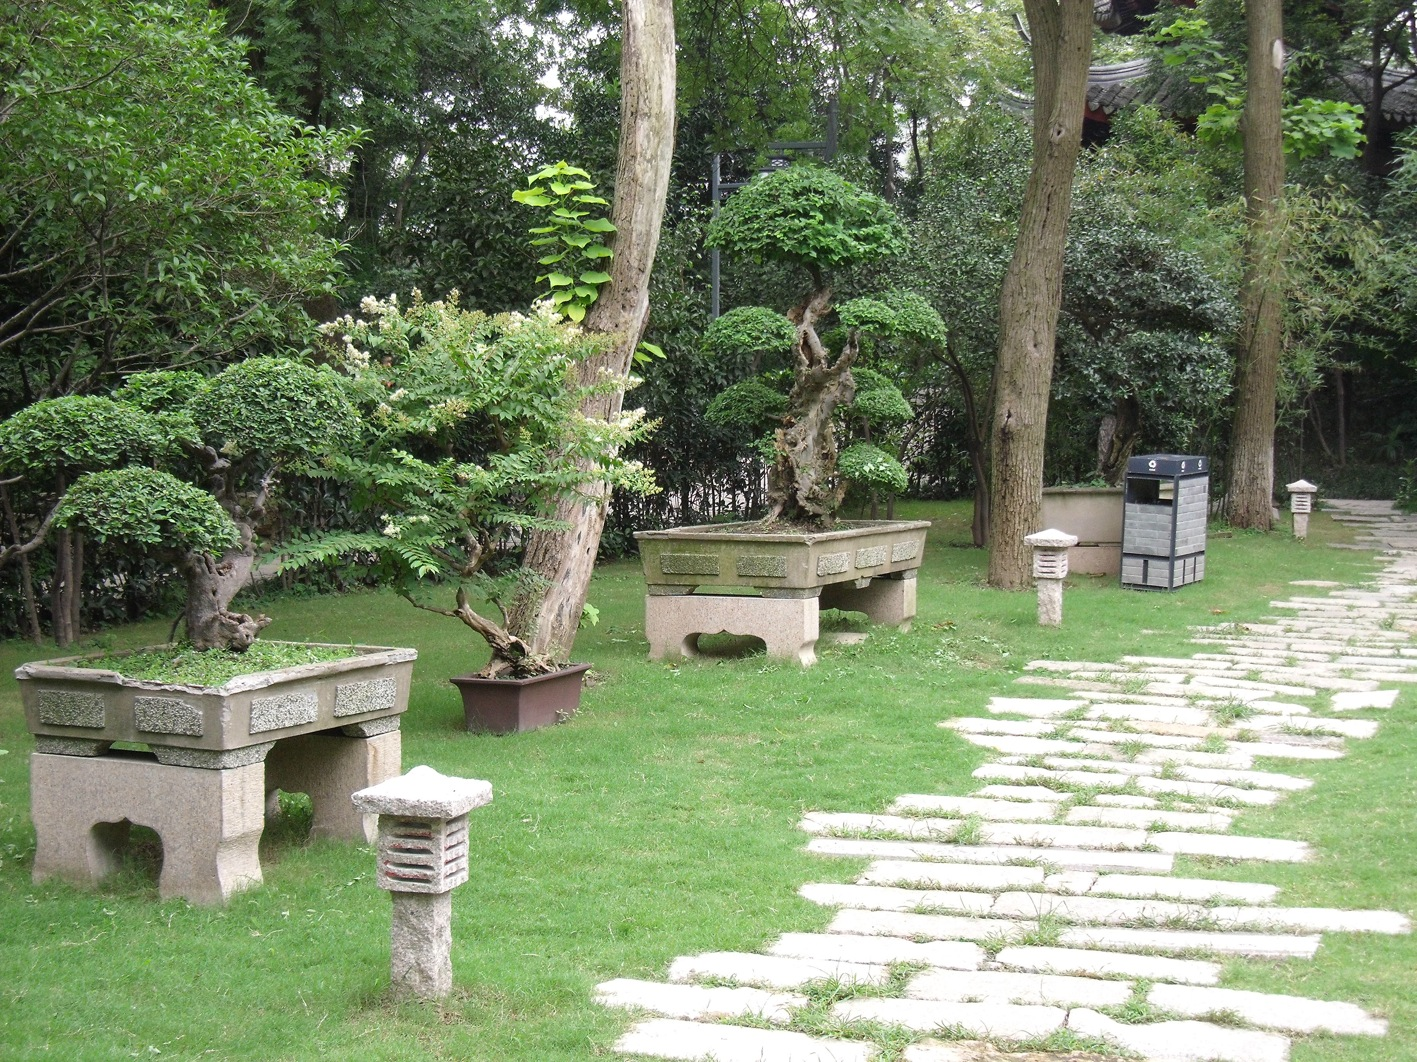 Jardin traditionnel chinois curieuse voyageuse for Conception jardin chinois